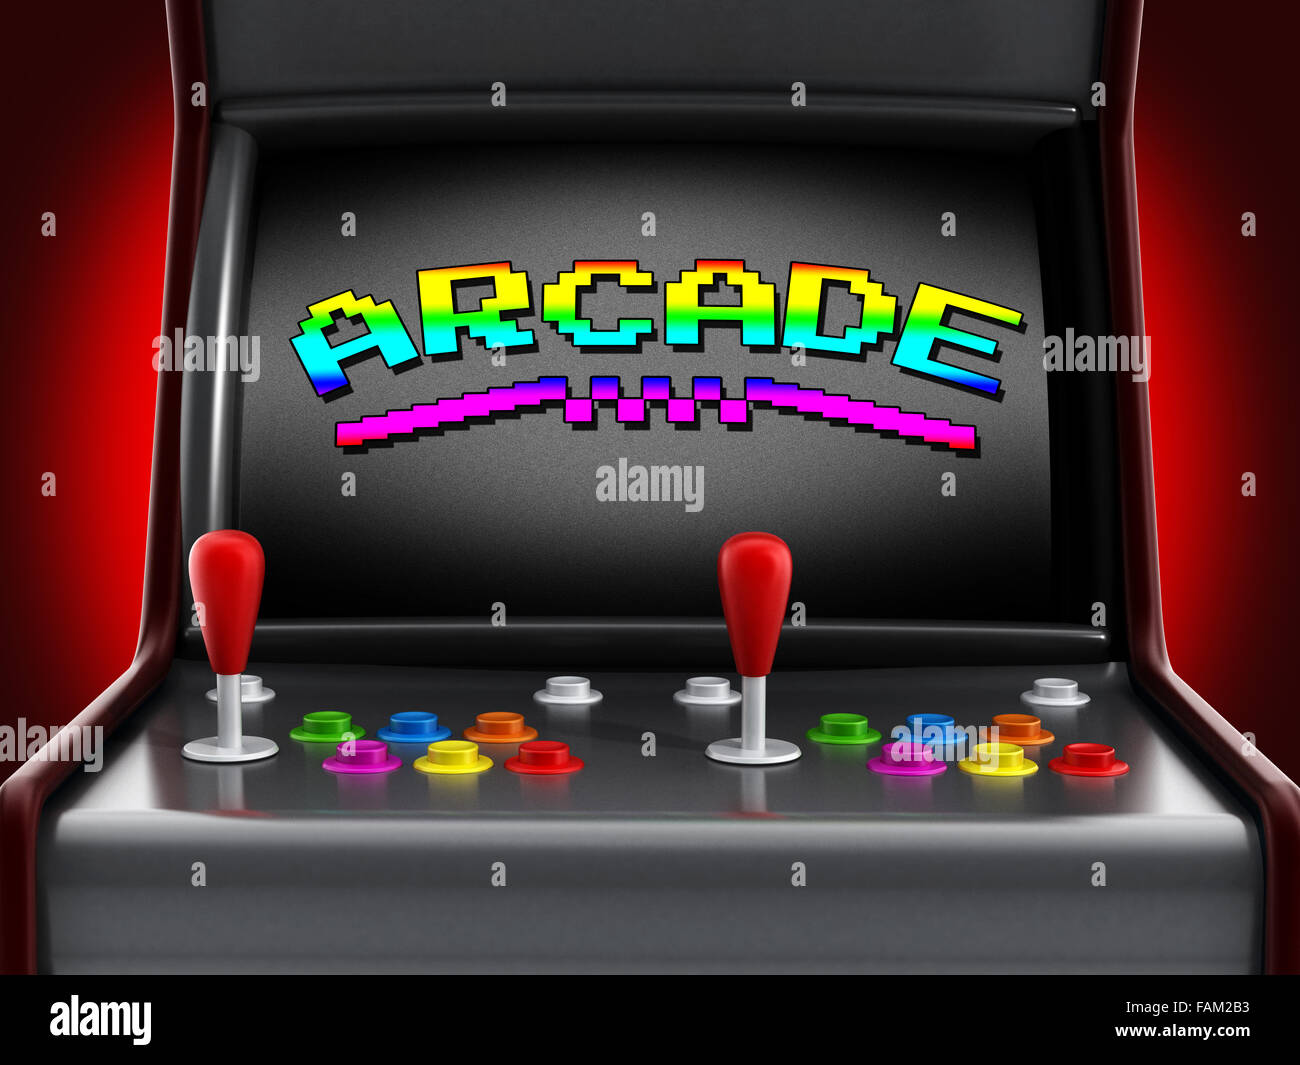 Vintage arcade machine with joysticks and push buttons for two people. - Stock Image